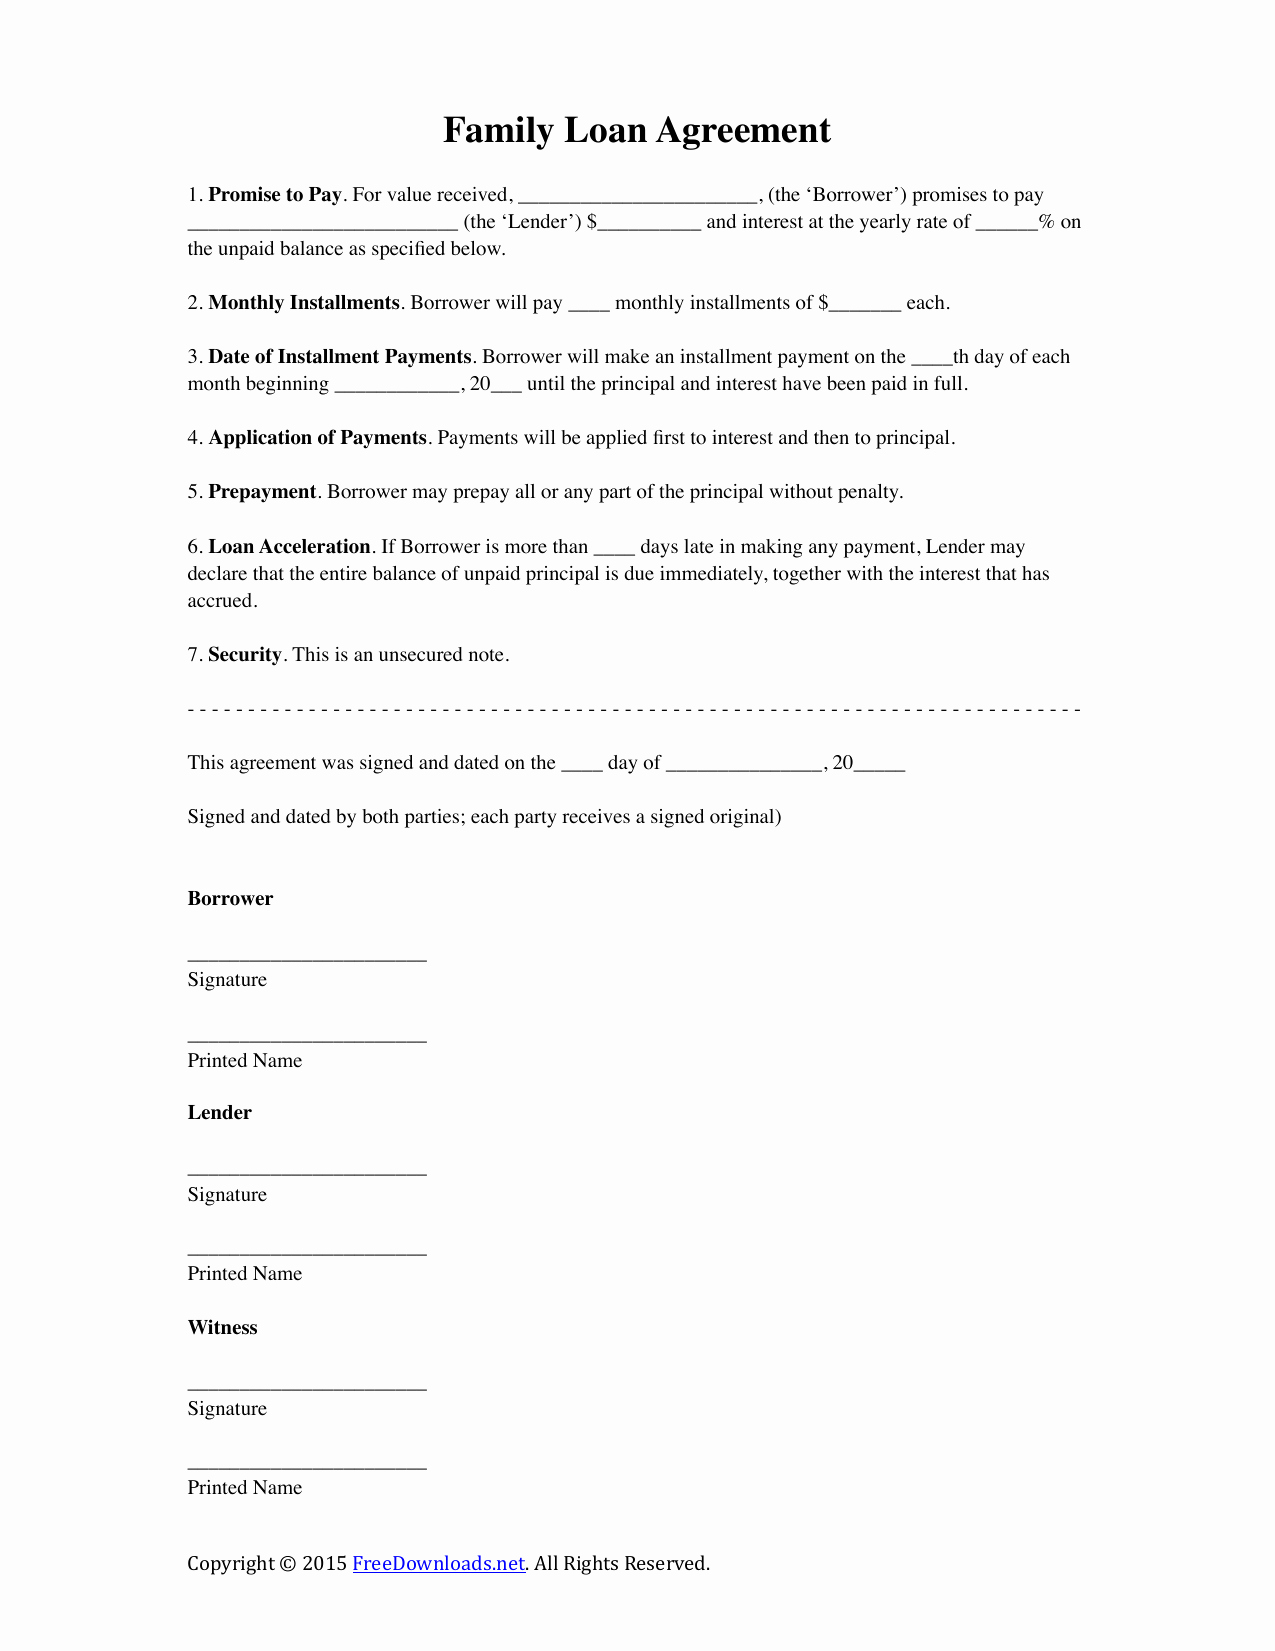 Free Loan Document Template Inspirational Download Family Loan Agreement Template Pdf Rtf